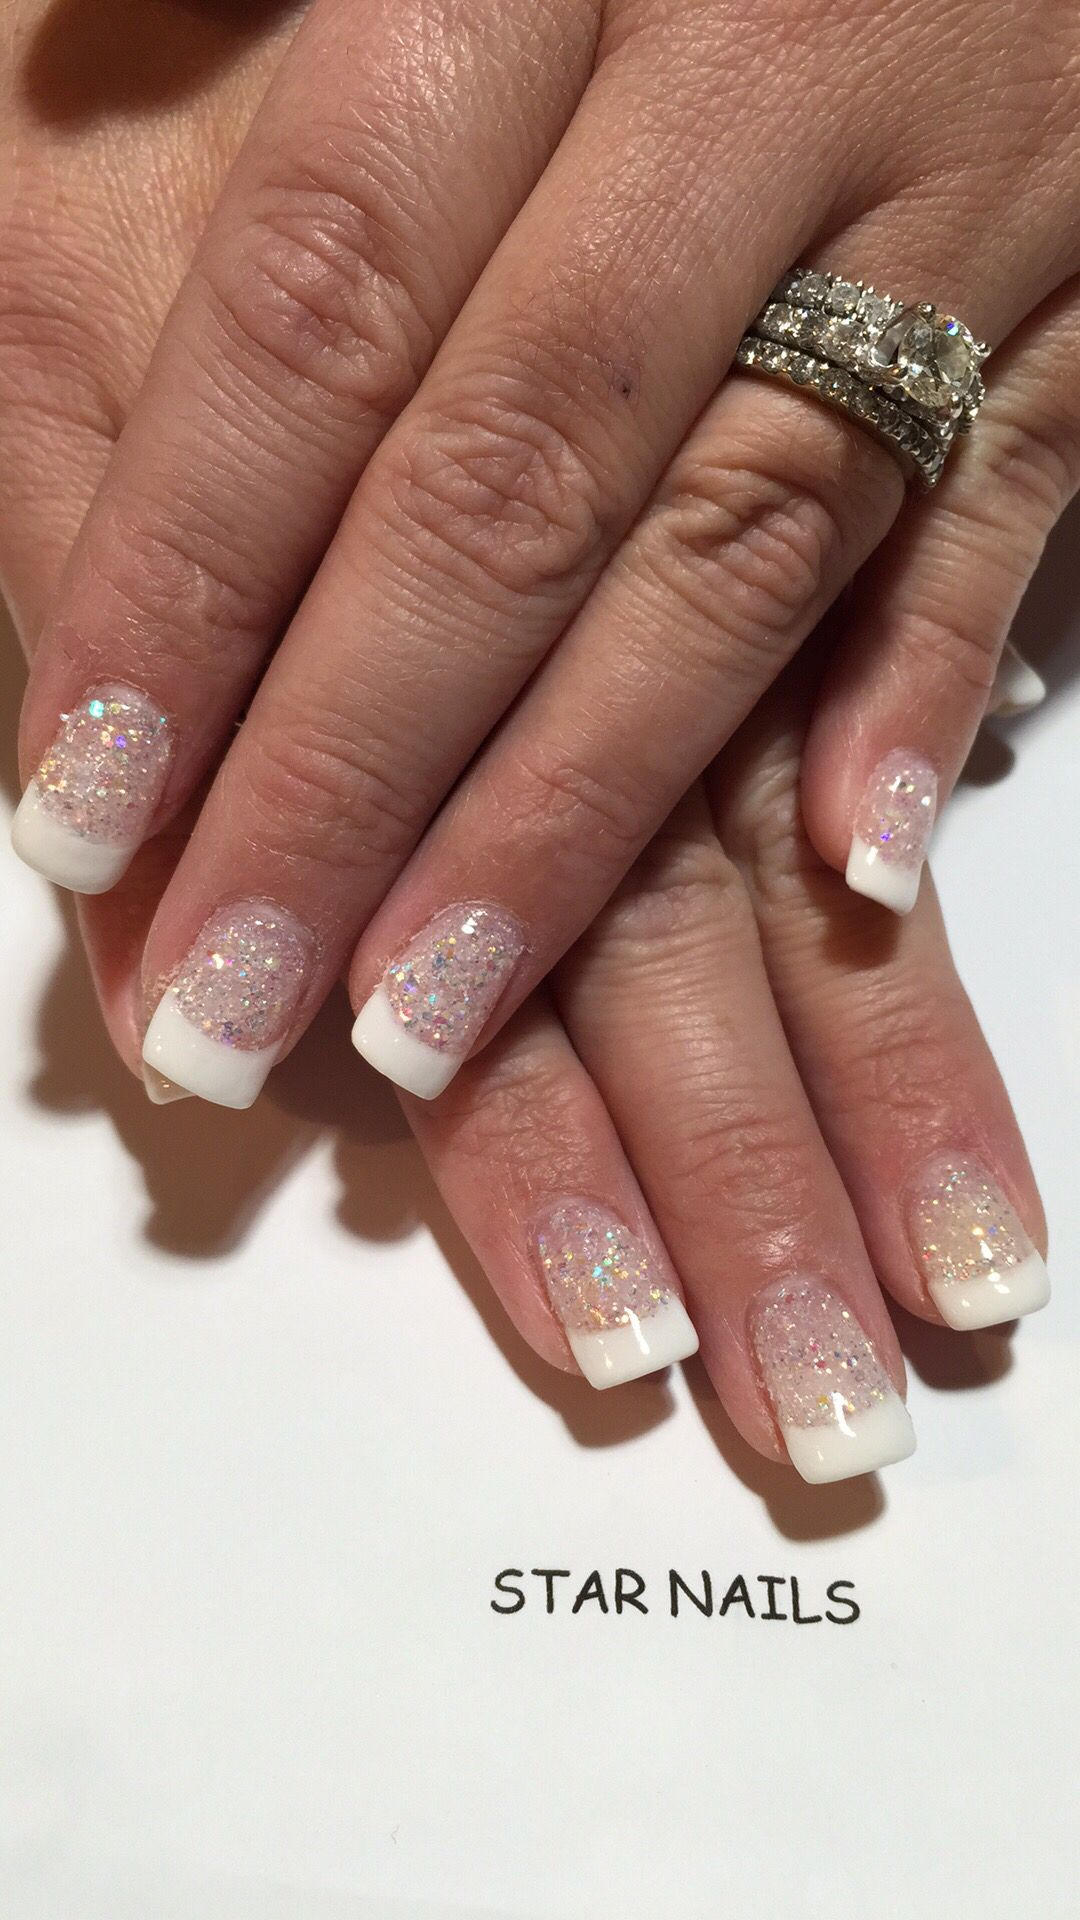 Gelous dip powder sparkle French manicure | Star nails pitman ...